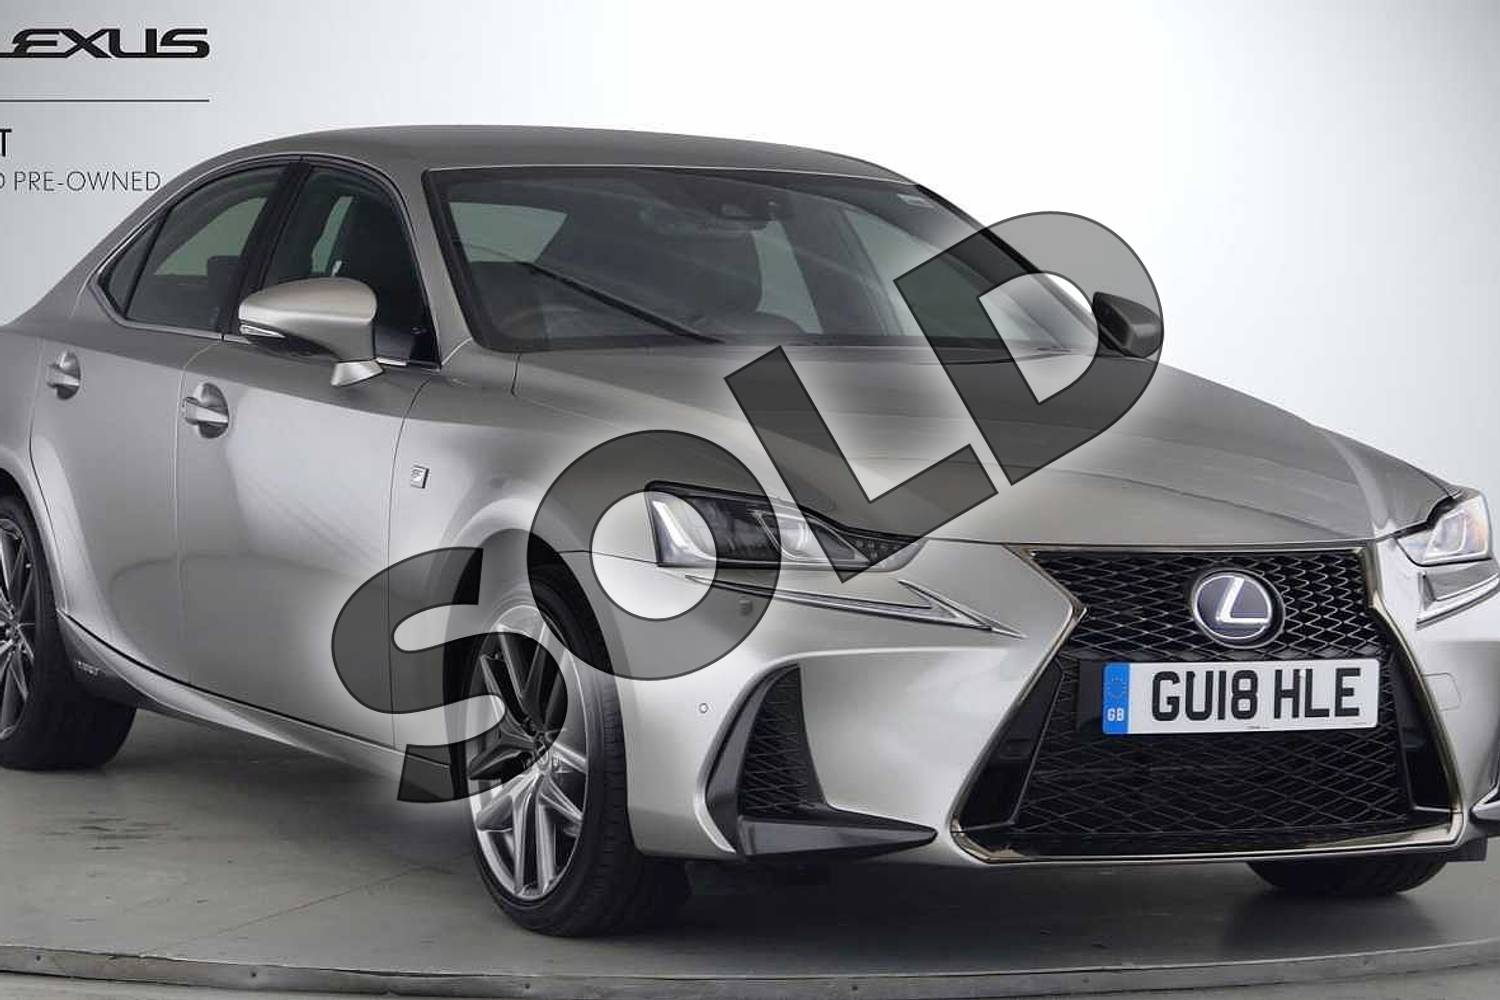 2018 Lexus IS Saloon 300h F-Sport 4dr CVT Auto in Silver at Lexus Lincoln